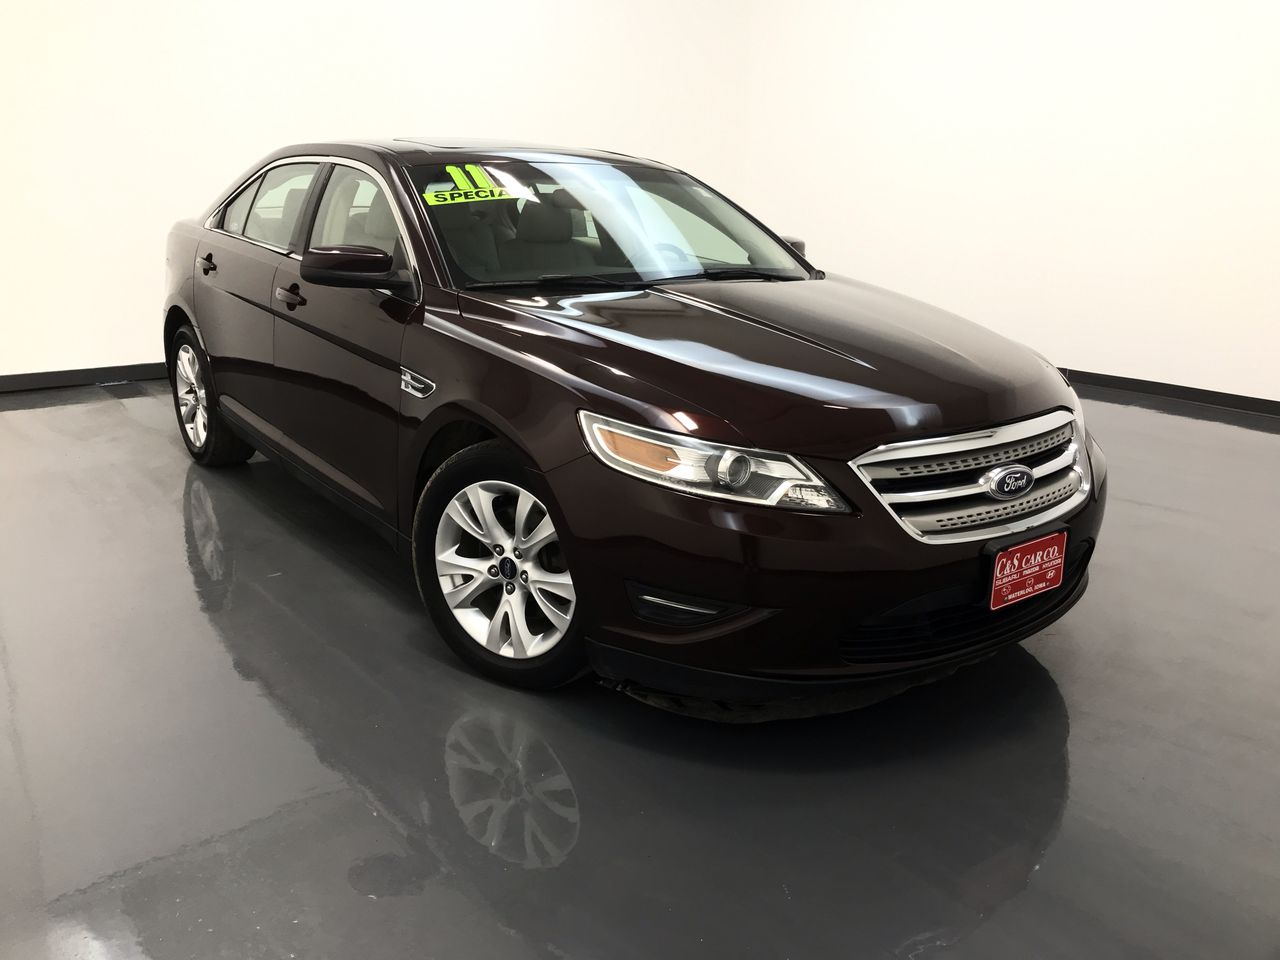 2011 Ford Taurus 4D Sedan  - R16441  - C & S Car Company